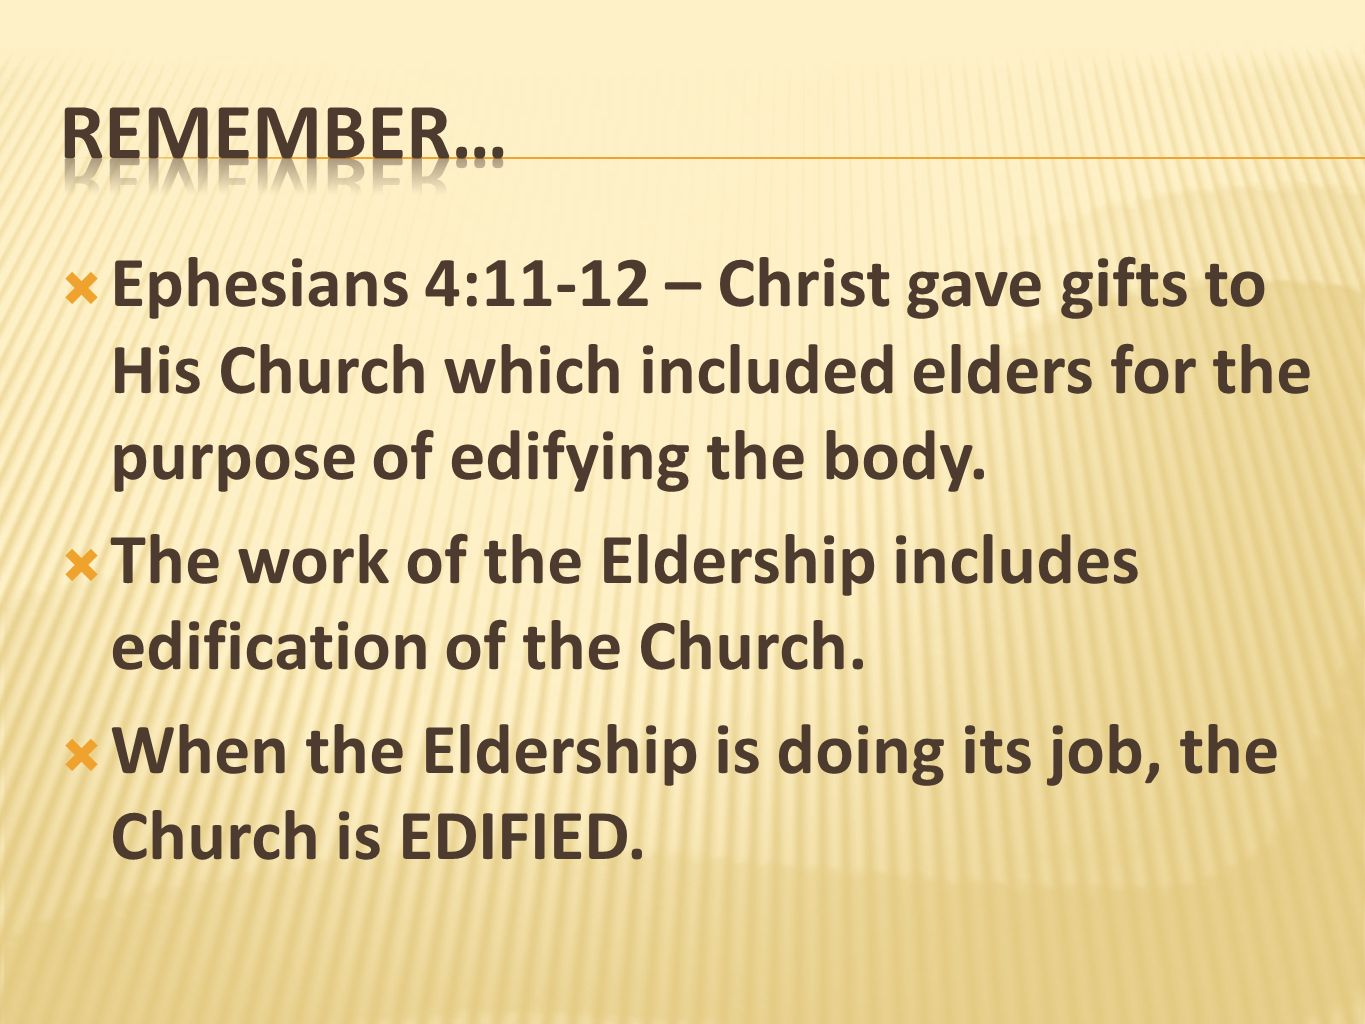 REMEMBER… Ephesians 4:11-12 – Christ gave gifts to His Church which included elders for the purpose of edifying the body.